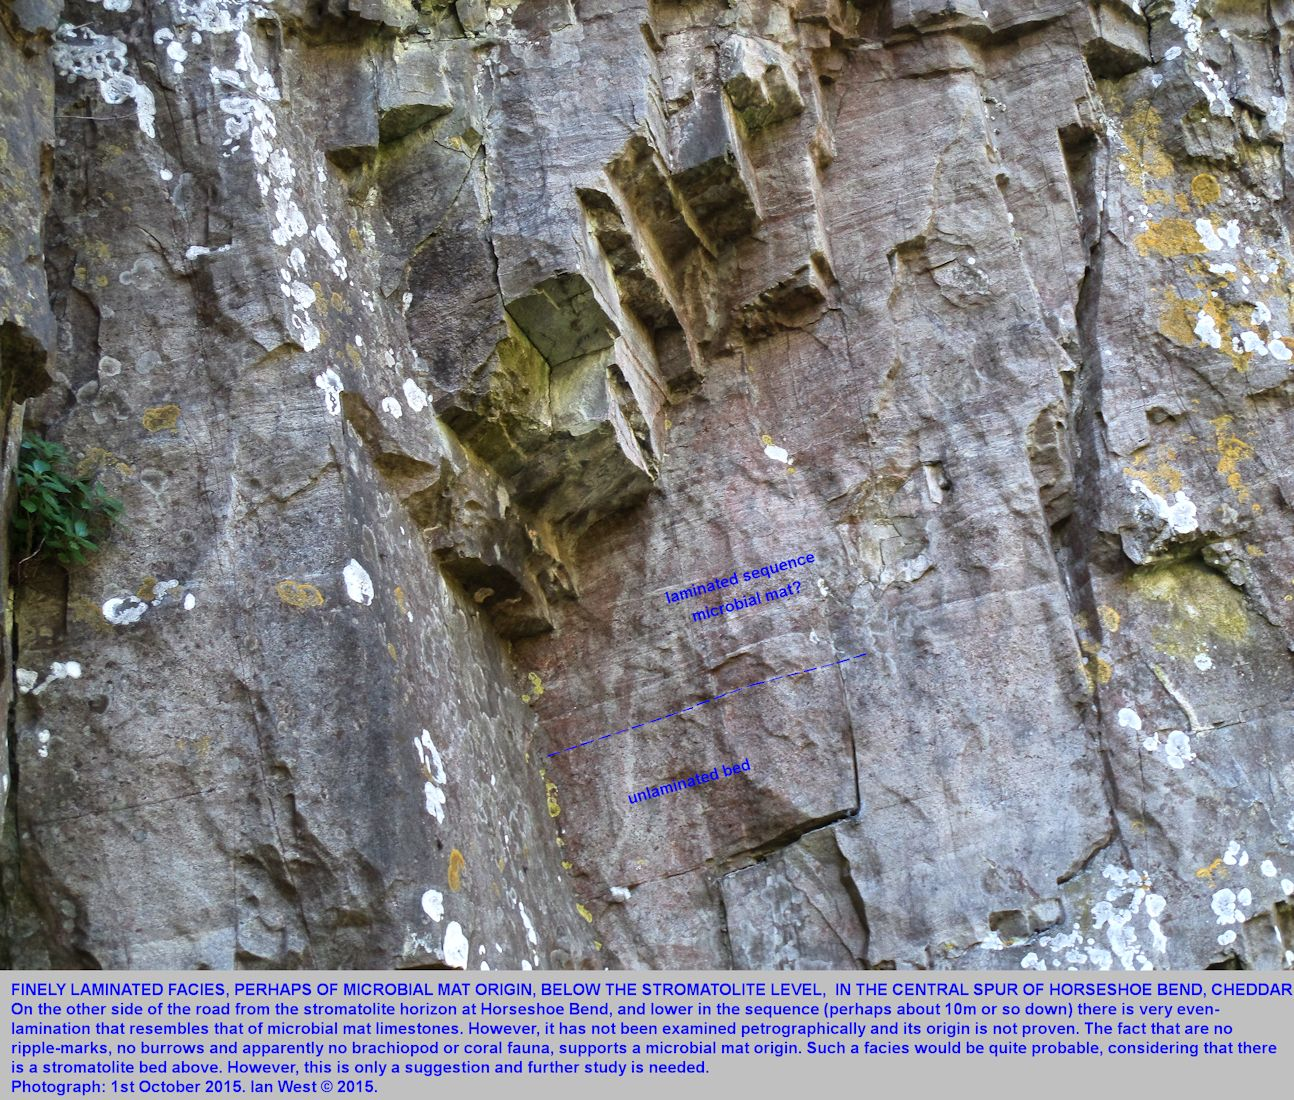 Finely laminated limestone, that may be of microbial mat origin in the central spur of Horseshoe Bend, Cheddar Gorge, Mendip Hills, Somerset, rather lower than the hemispheroidal stromatolites